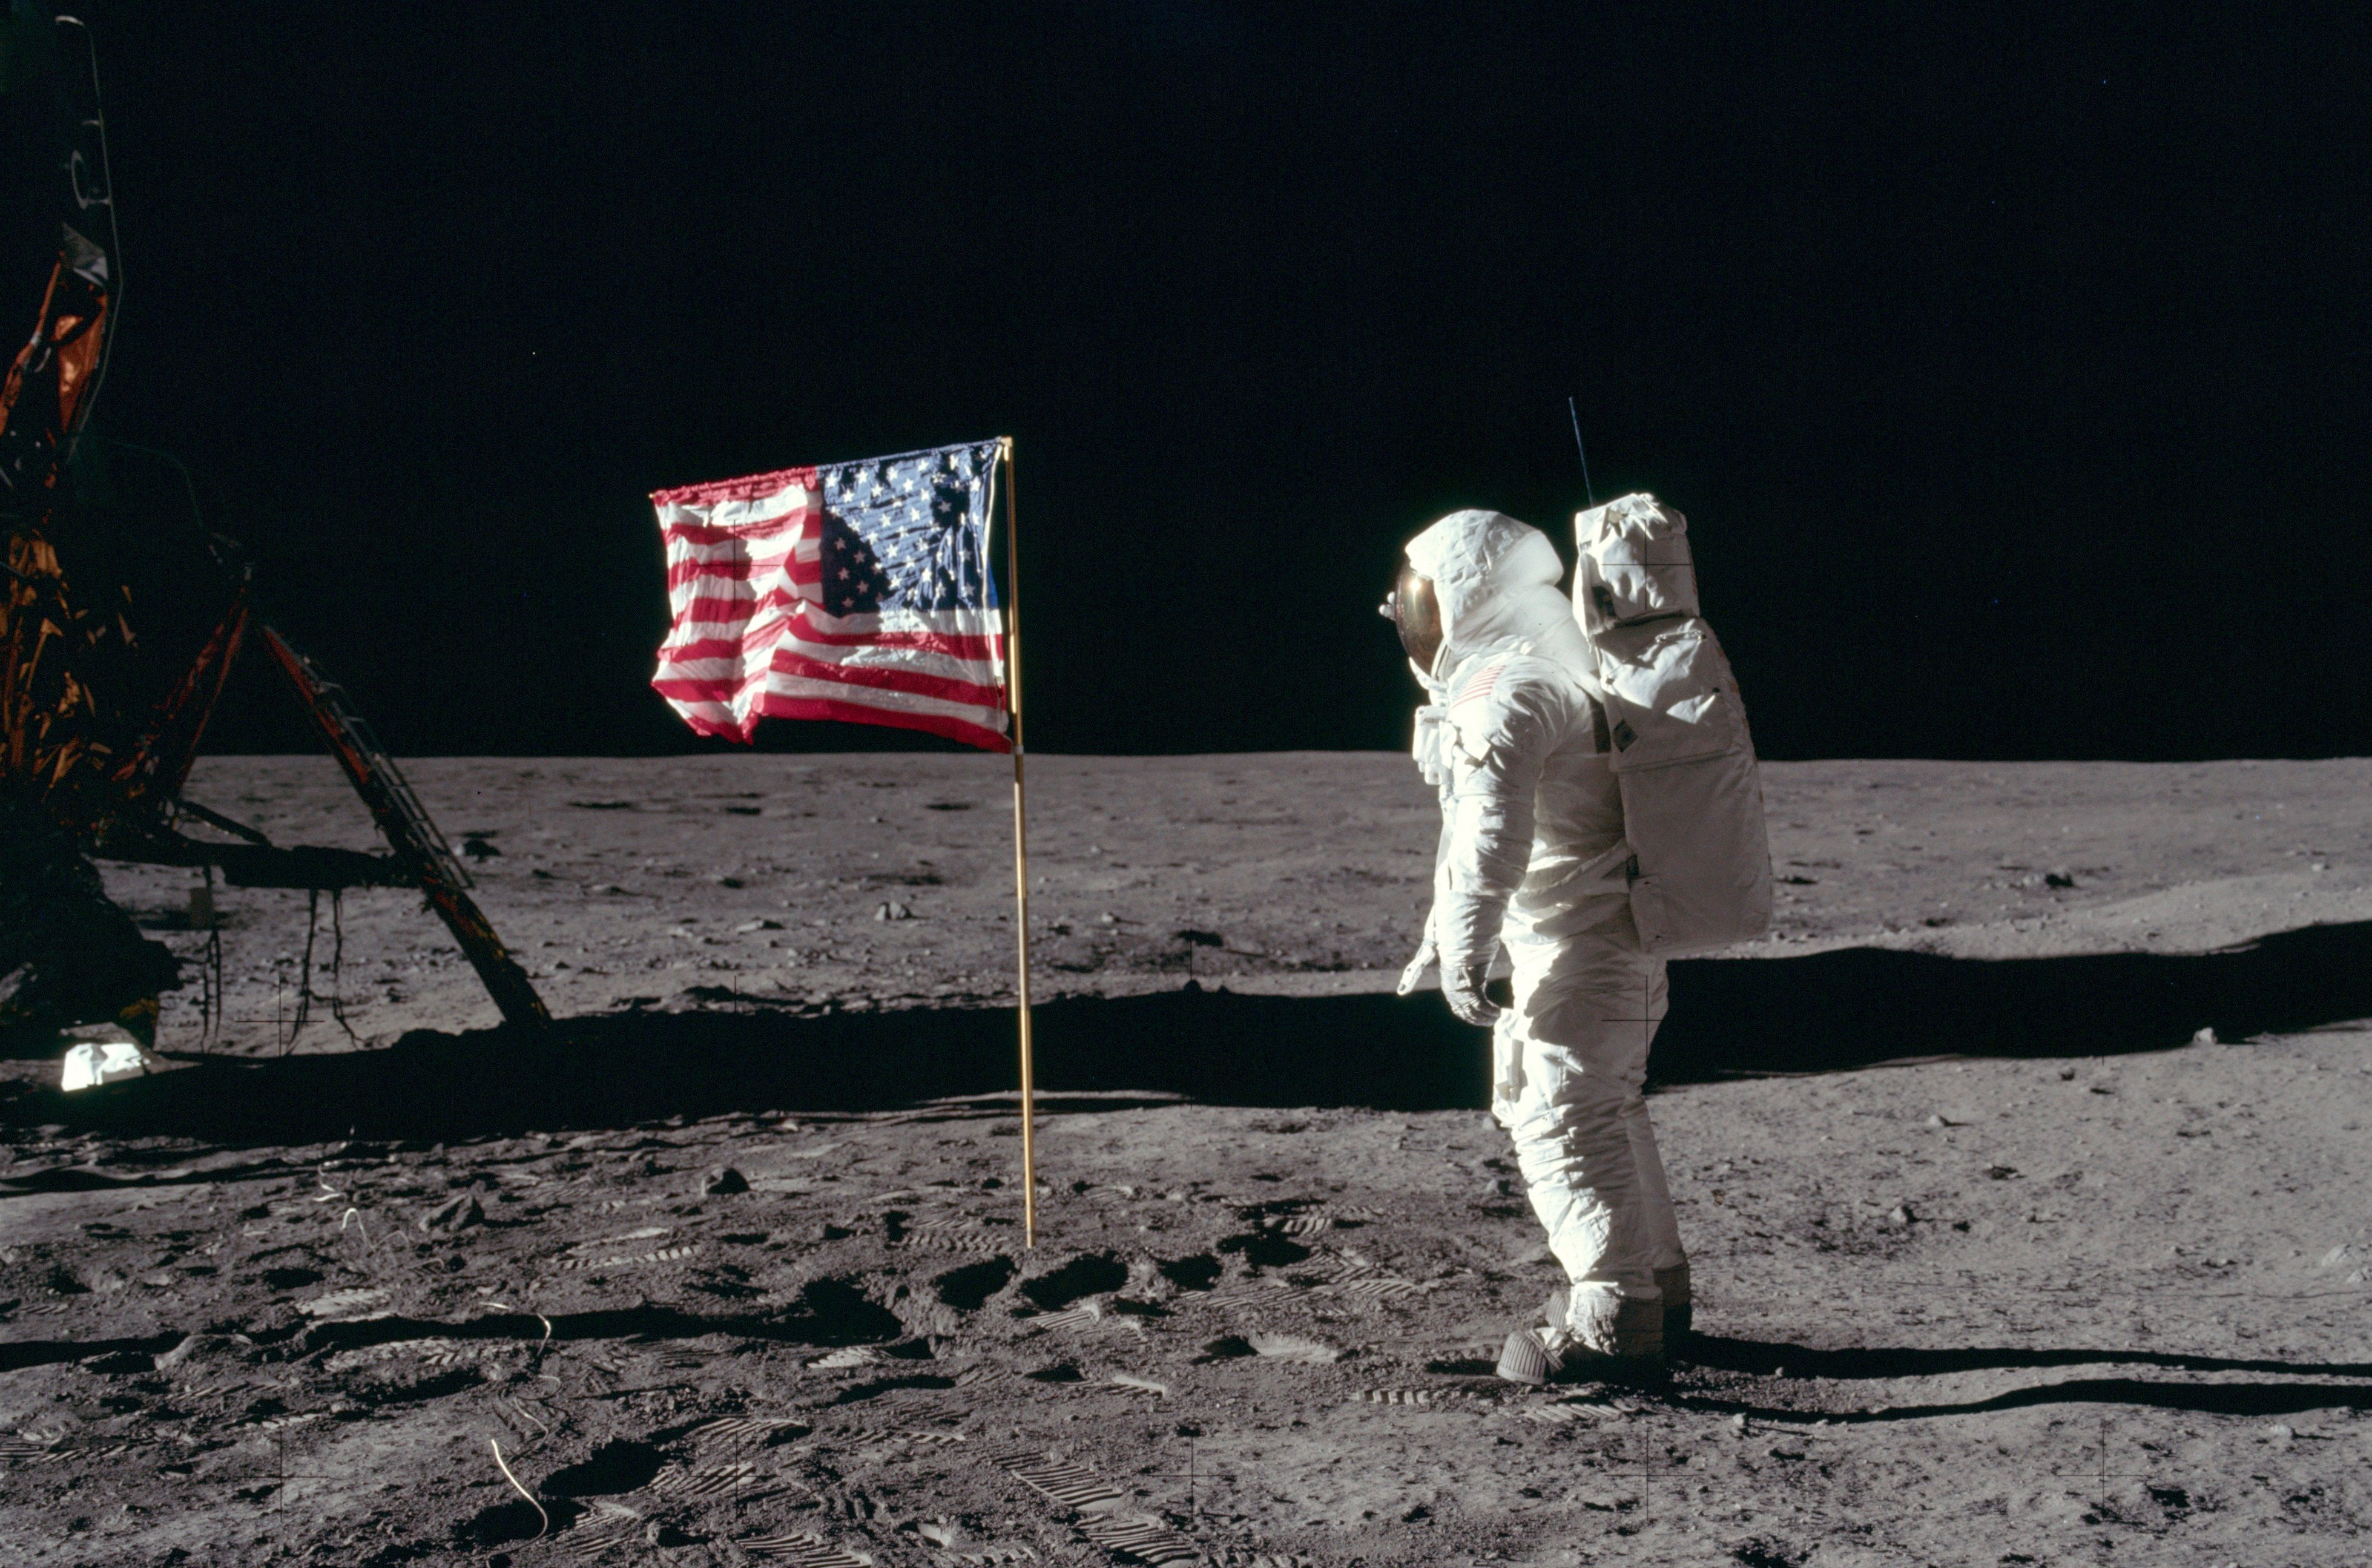 Buzz Aldrin and the U.S. flag on the moon in 1969.